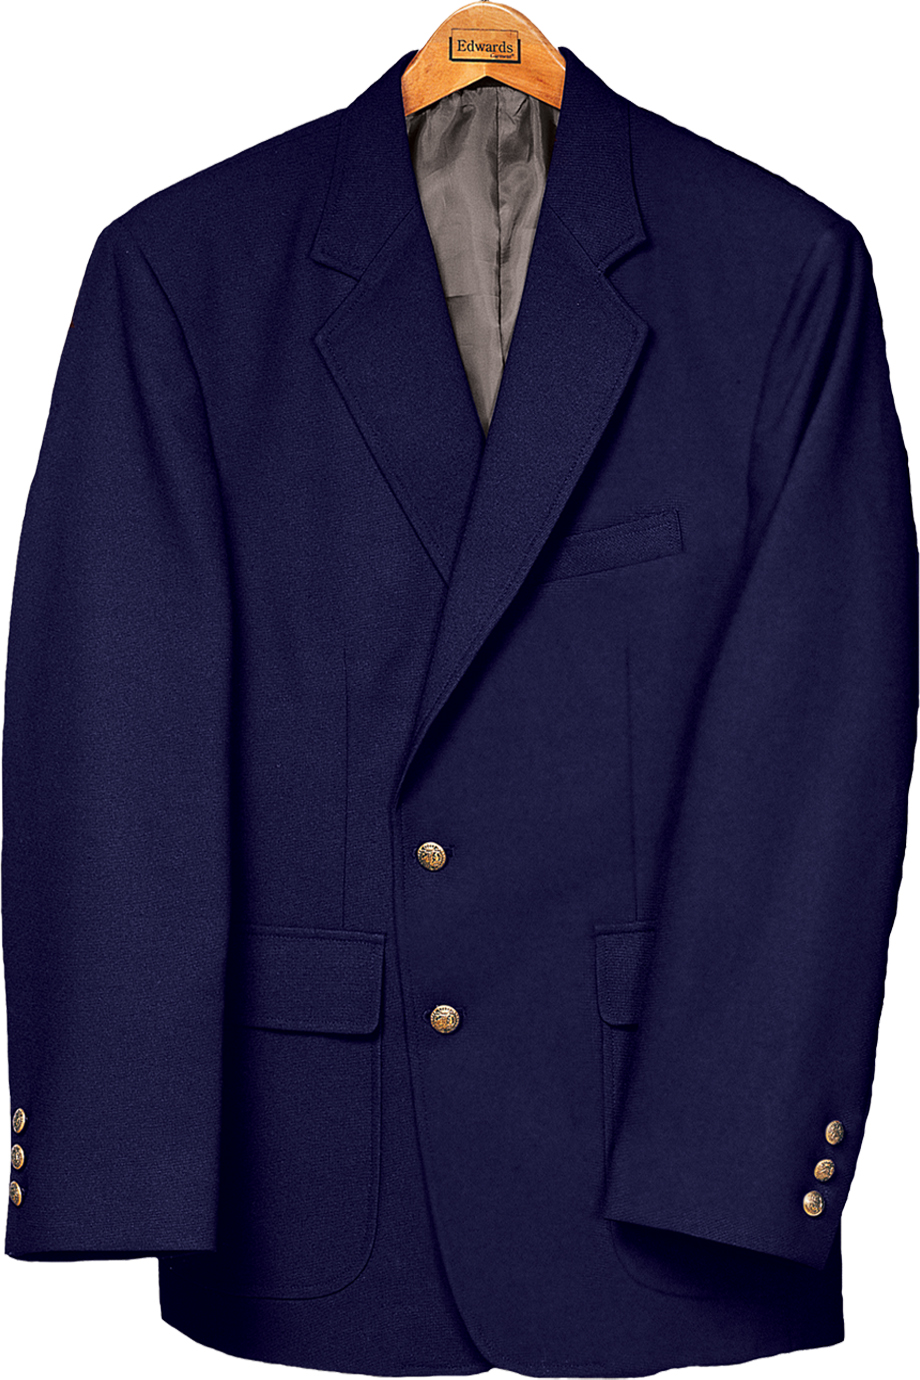 Edwards Mens Single-Breasted Blazer-Edwards